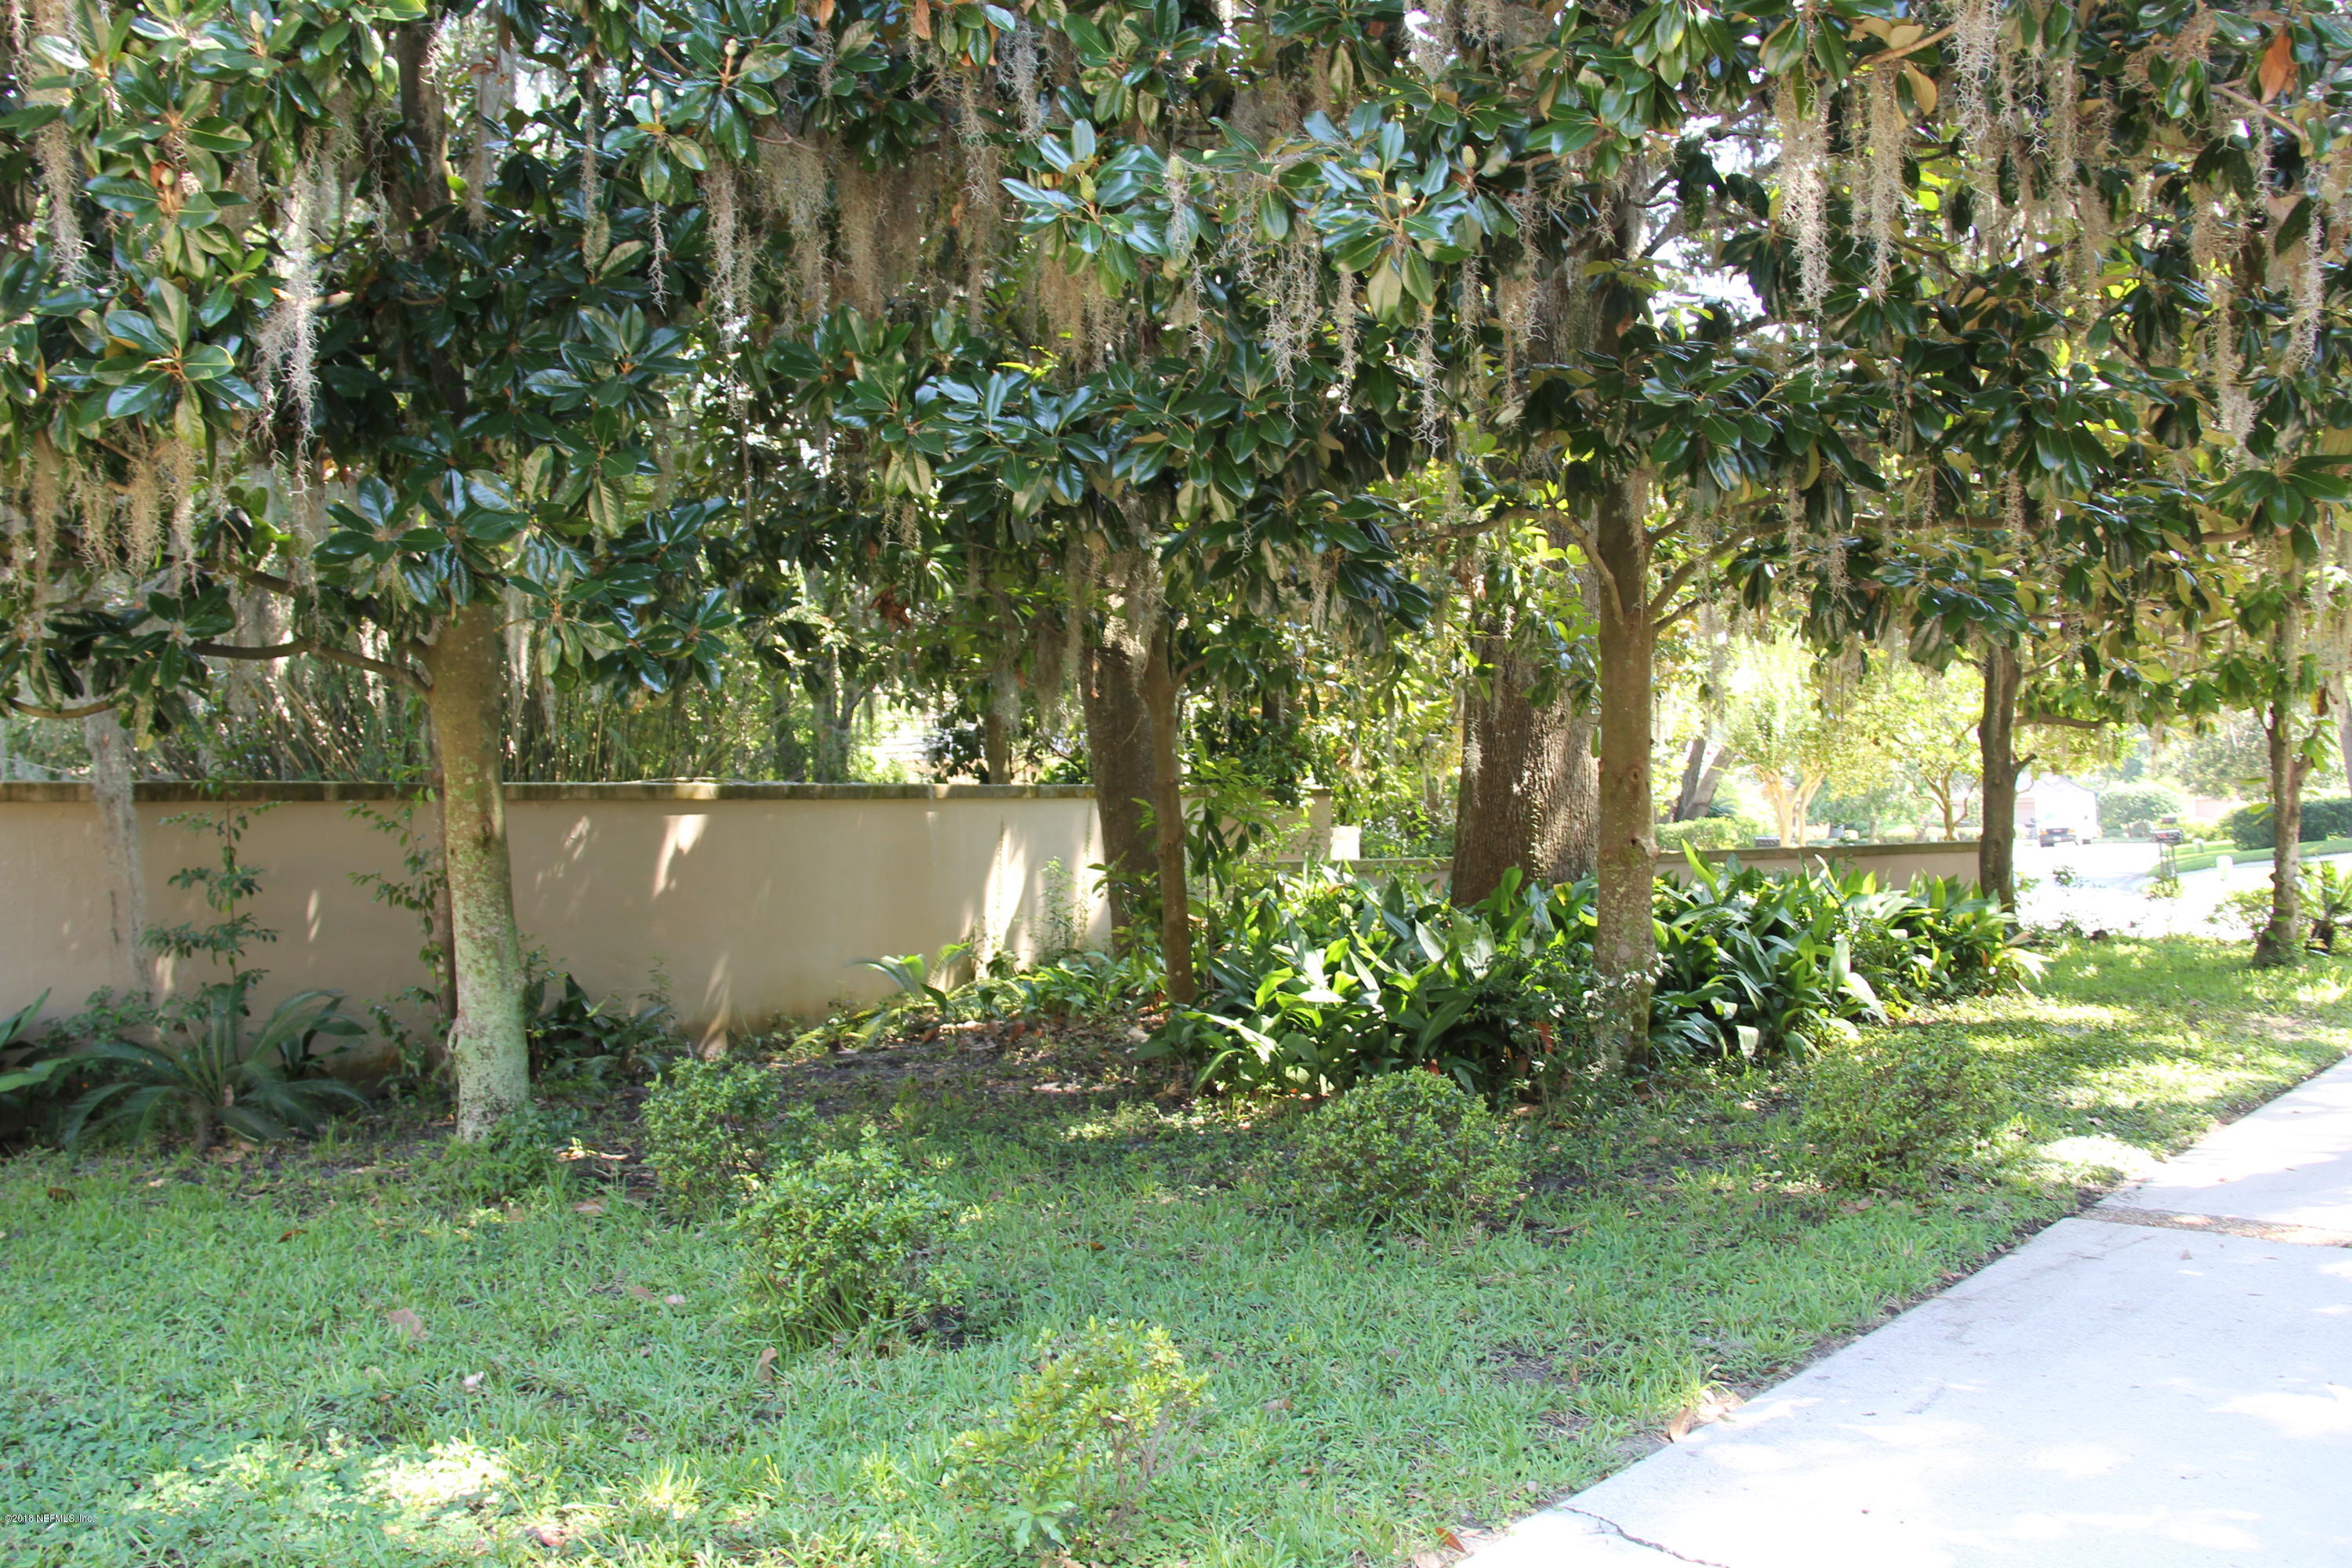 6744 LINFORD, JACKSONVILLE, FLORIDA 32217, 3 Bedrooms Bedrooms, ,2 BathroomsBathrooms,Residential - single family,For sale,LINFORD,947020